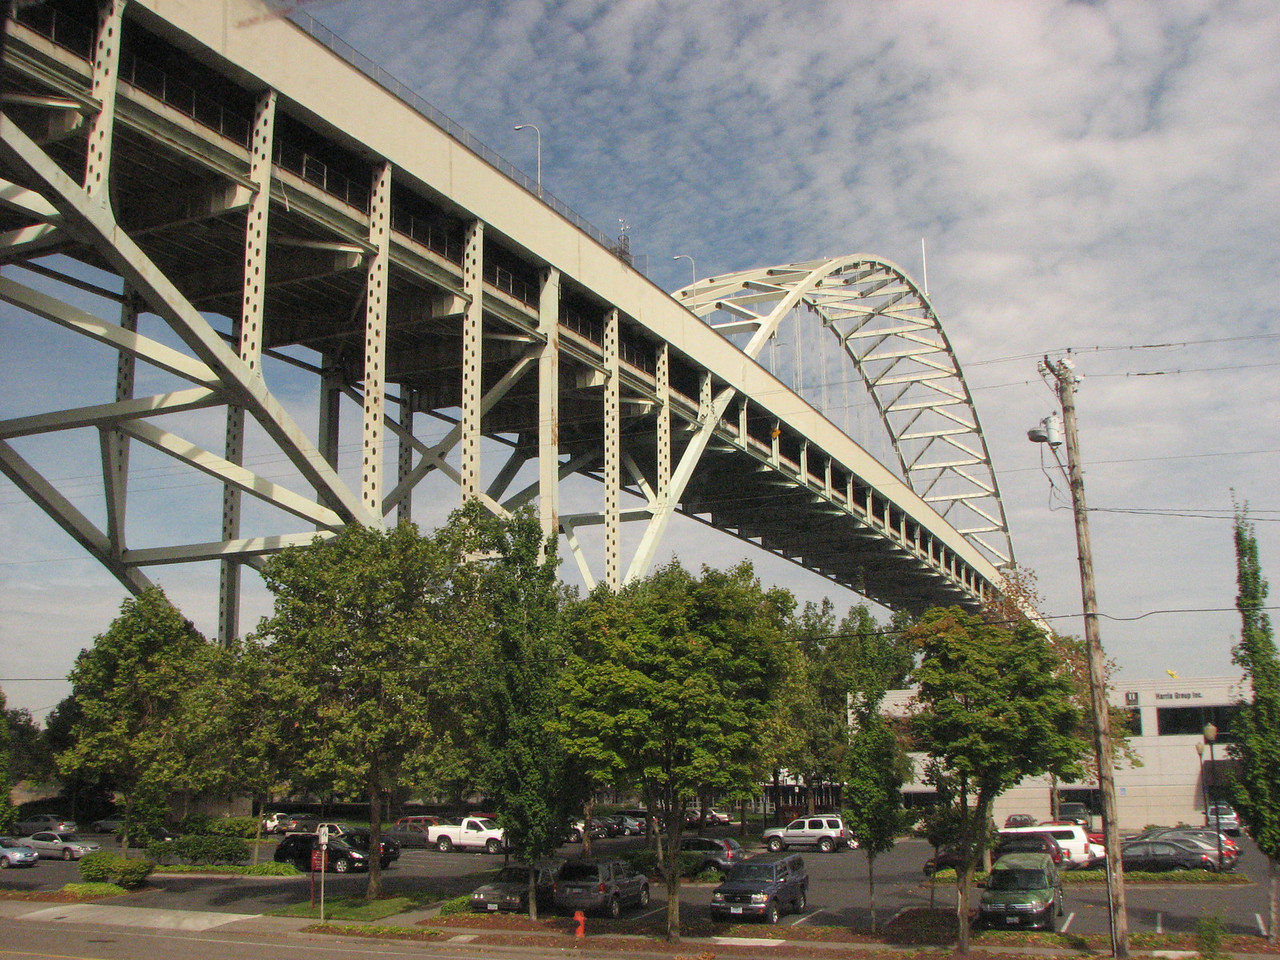 Bridge over the Willamette just west of the Portland Station.